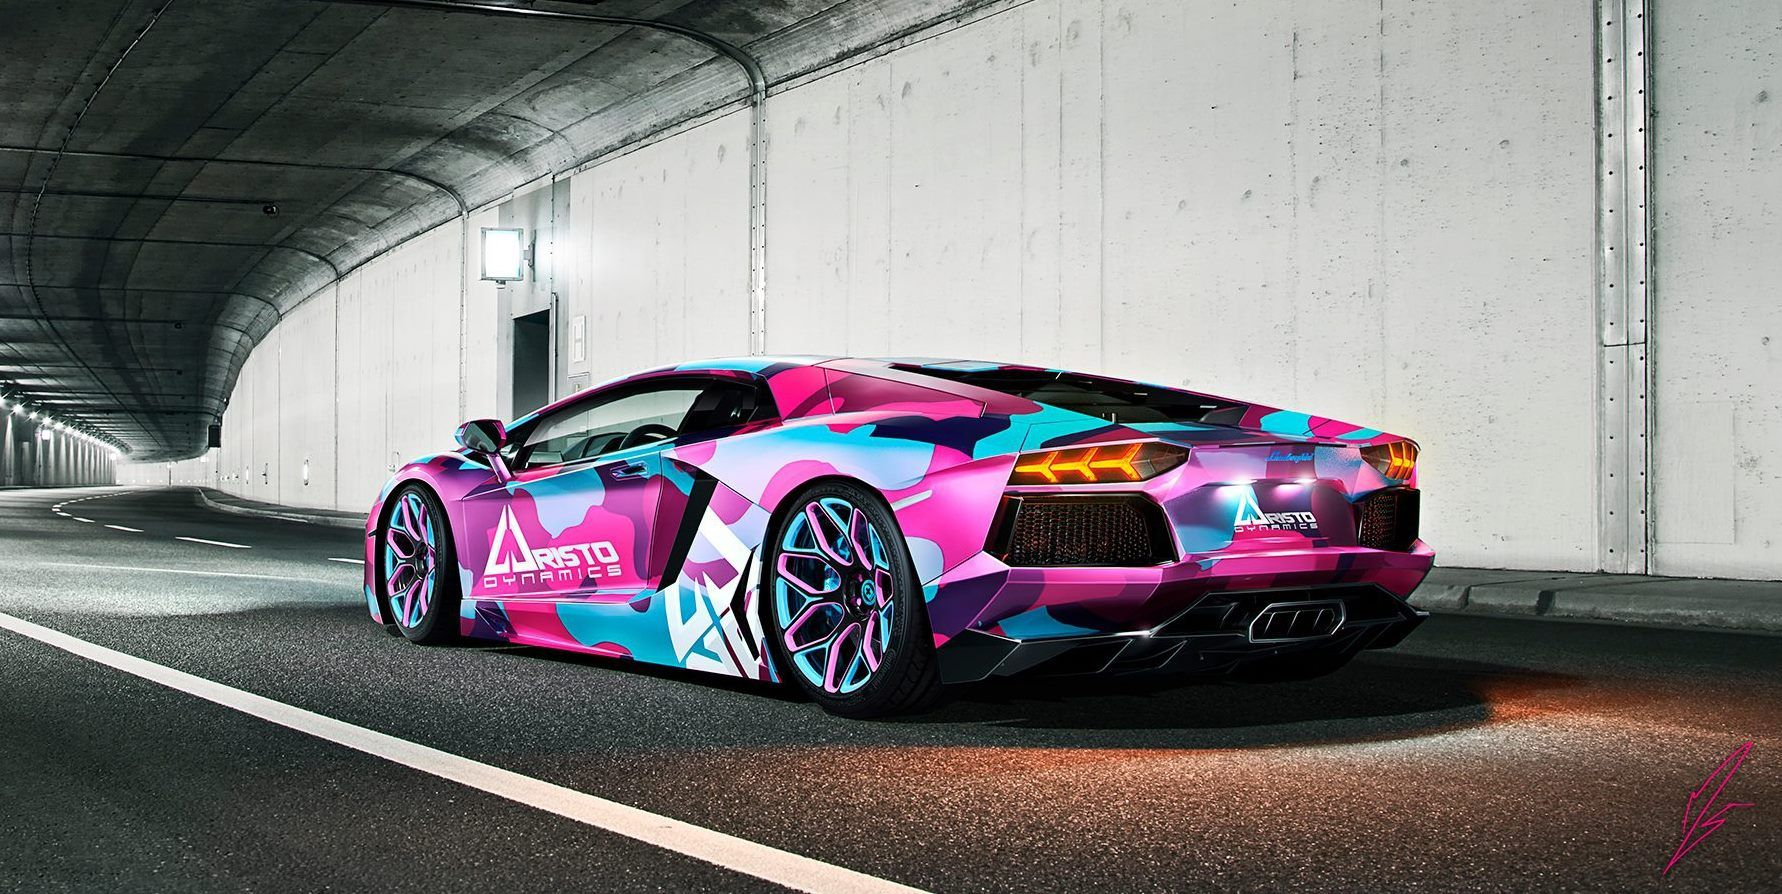 Awesome Design By Millergo Cg For Aristo Dynamics Car Wrap Design